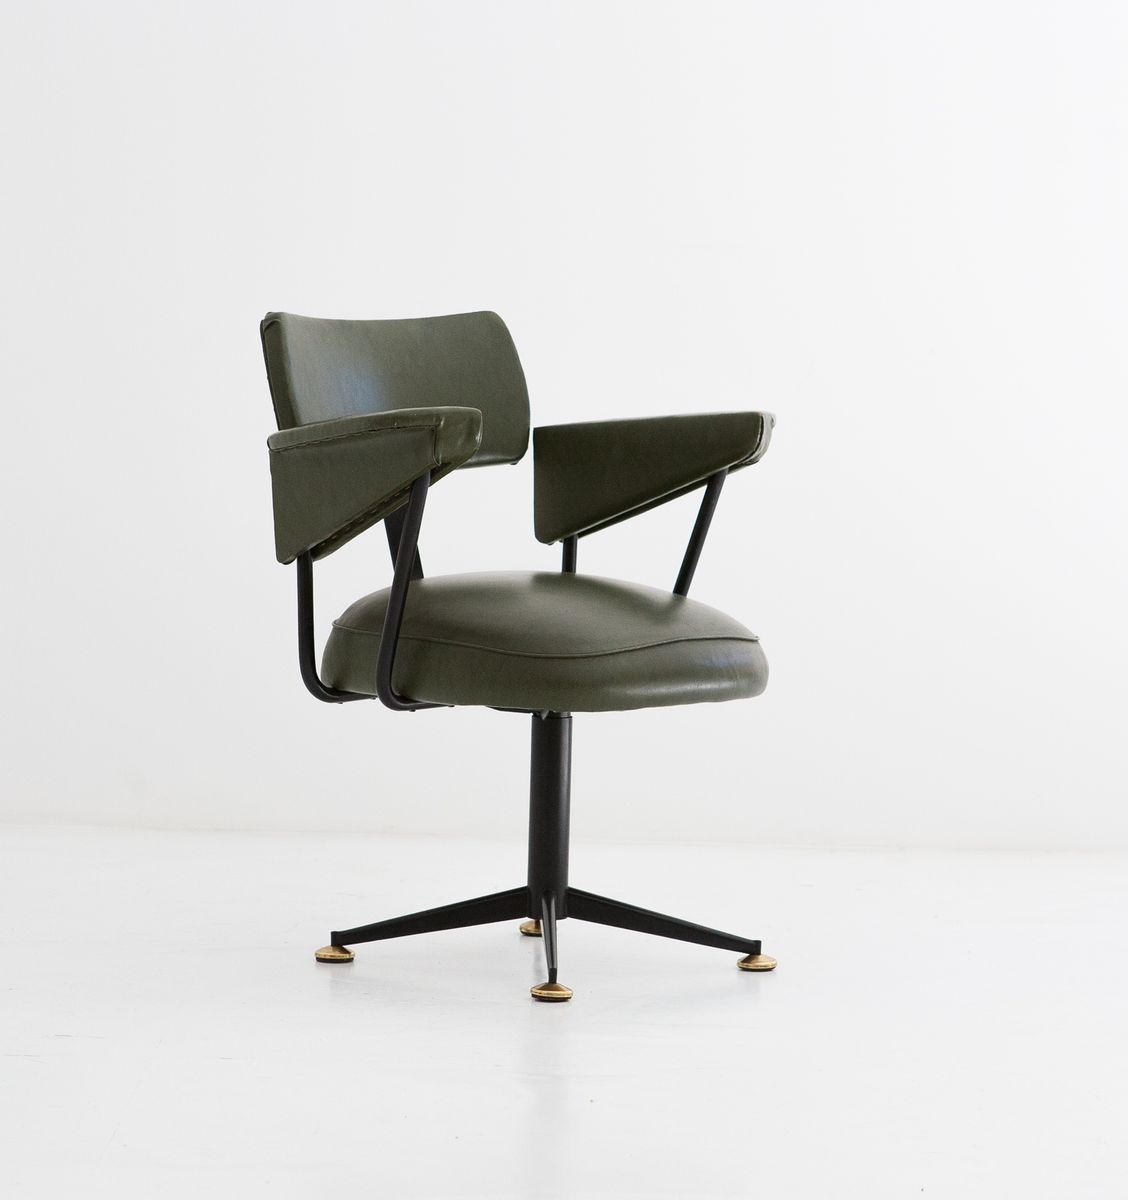 A Shapely Swivel Seat Inspired By Mid Century Design Our: Italian Mid-Century Swivel Armchair, 1950s For Sale At Pamono